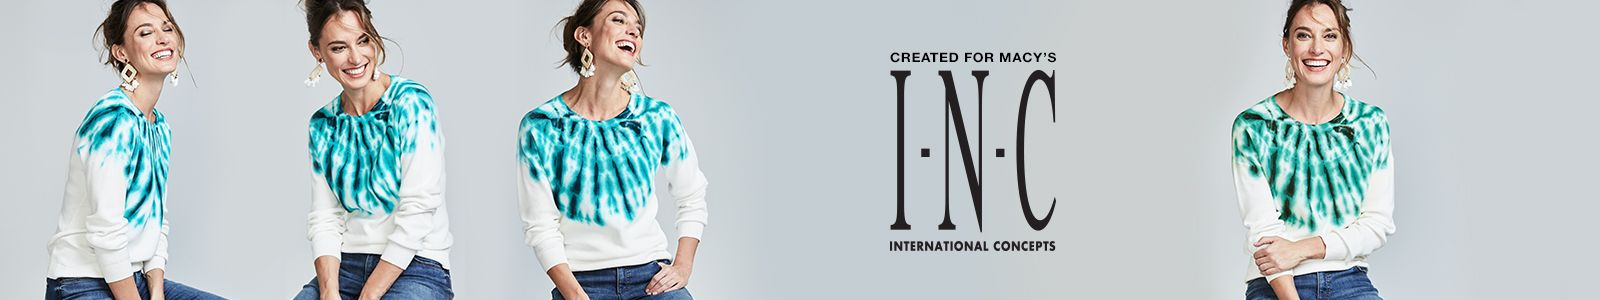 Created For Macy's INC, International Concepts